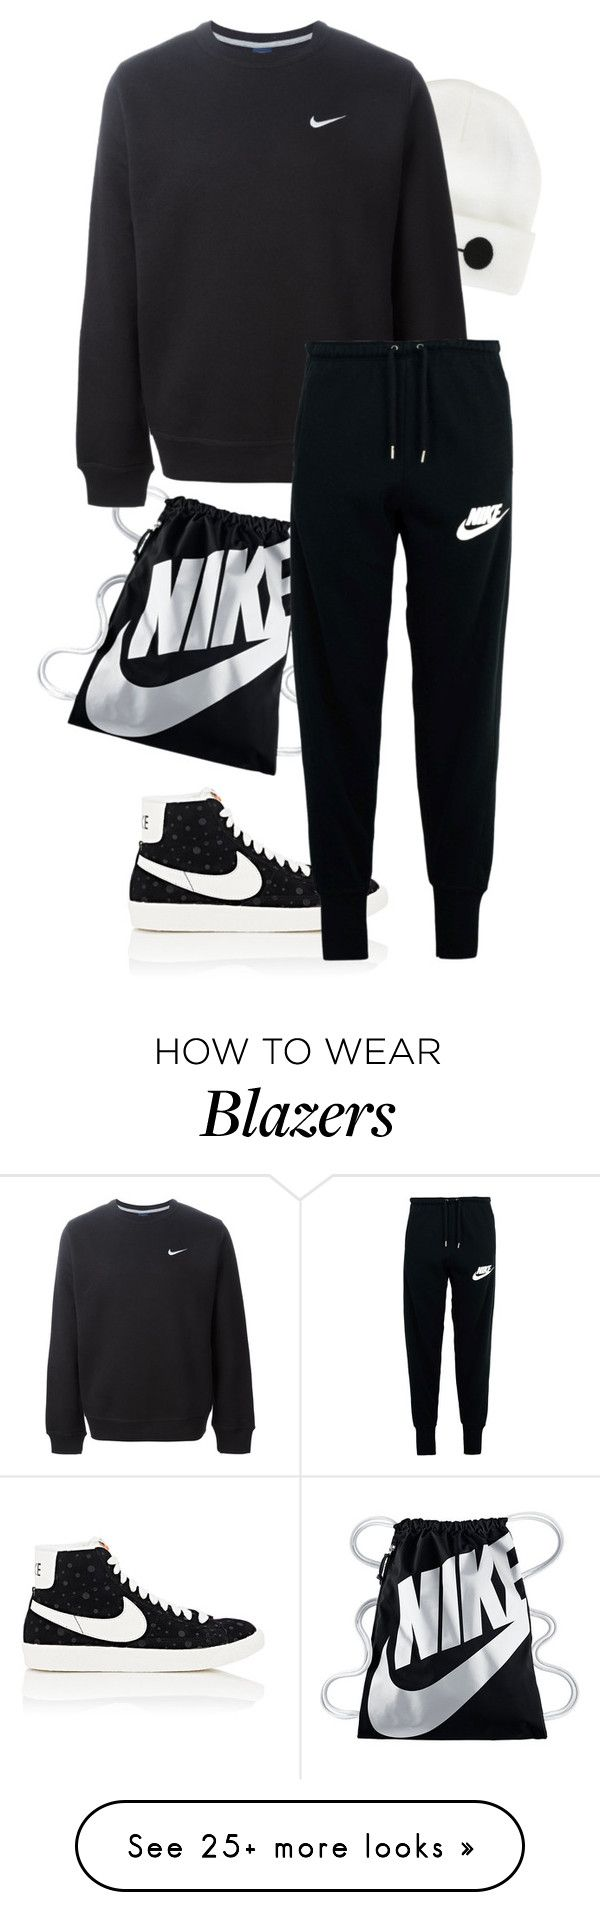 """""""Untitled #237"""" by n23da on Polyvore featuring NIKE and Disney"""